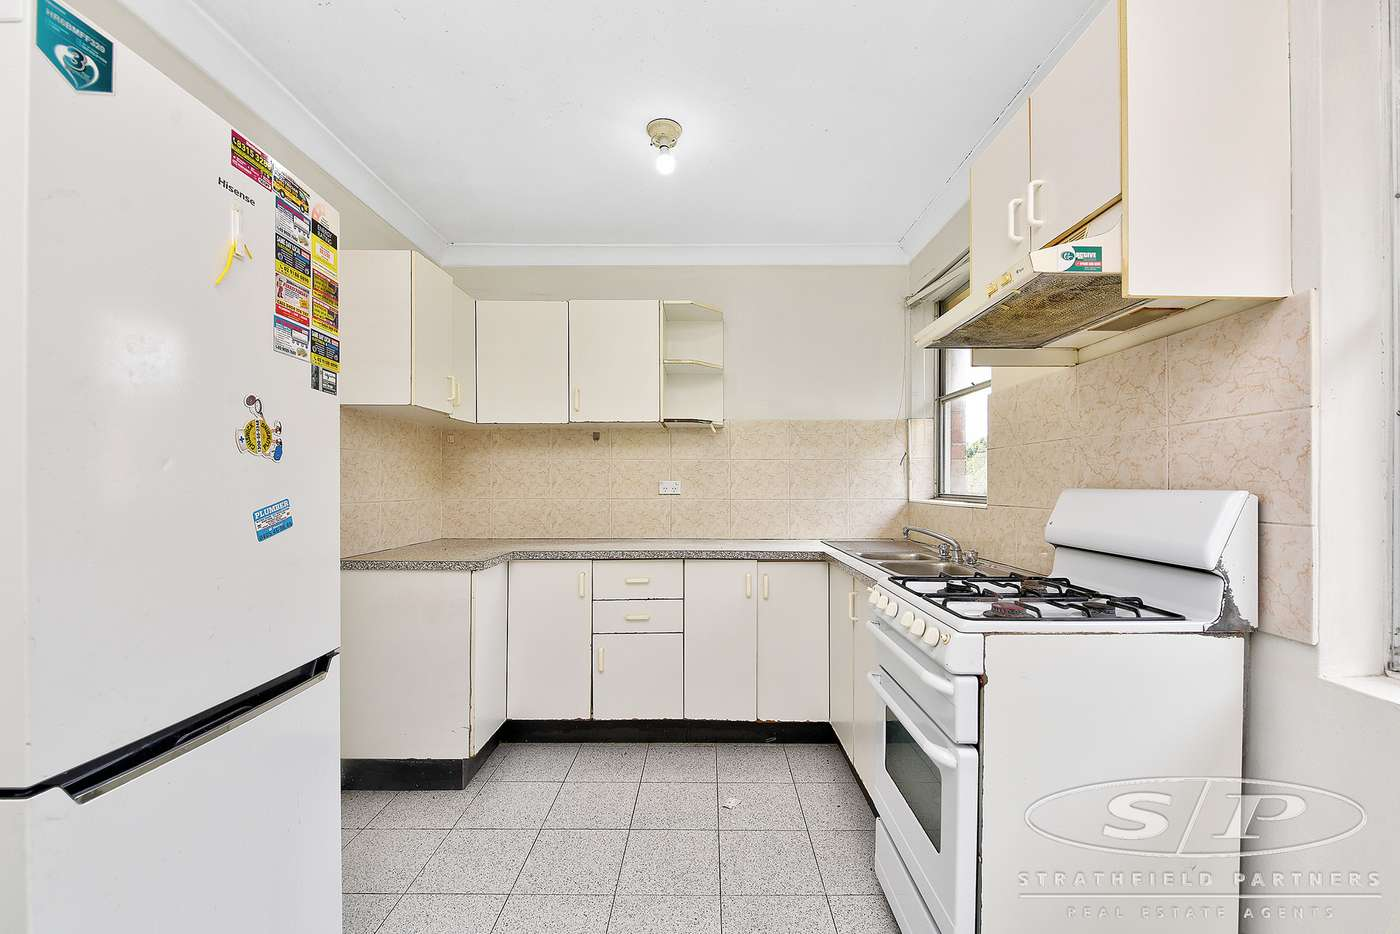 Main view of Homely apartment listing, 5/25 Marlene Crescent, Greenacre NSW 2190